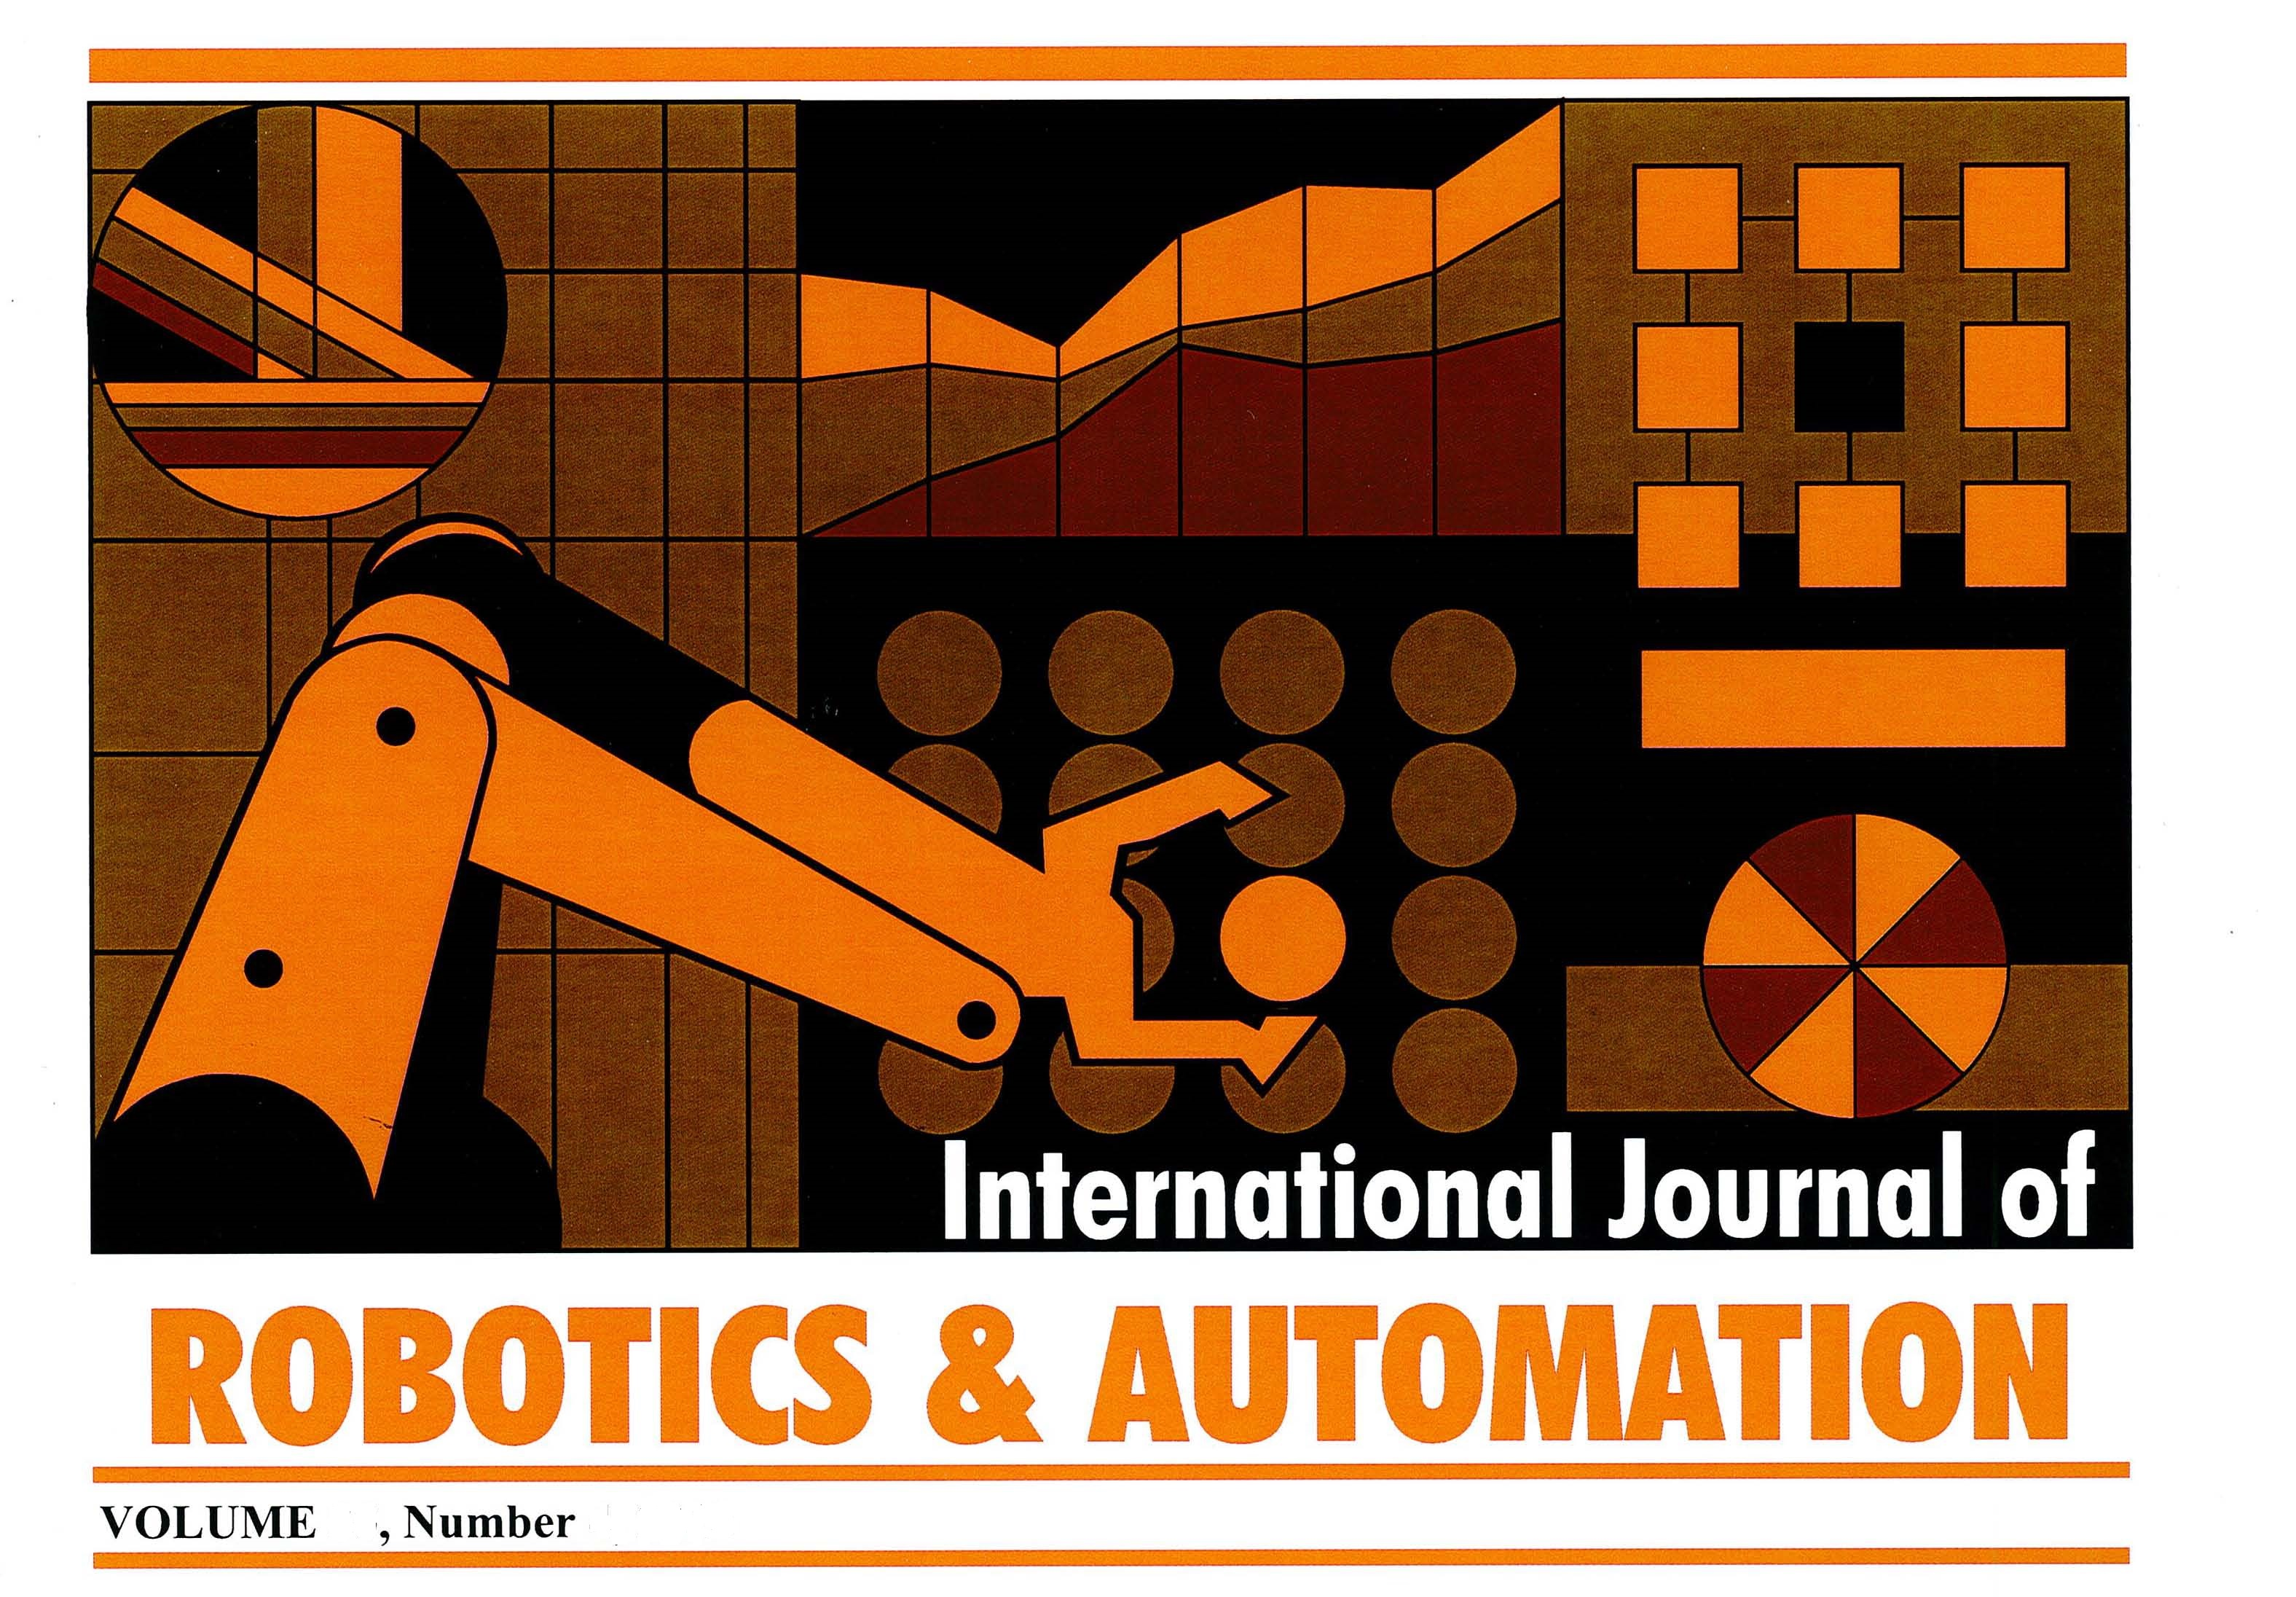 International Journal of Robotics & Automation